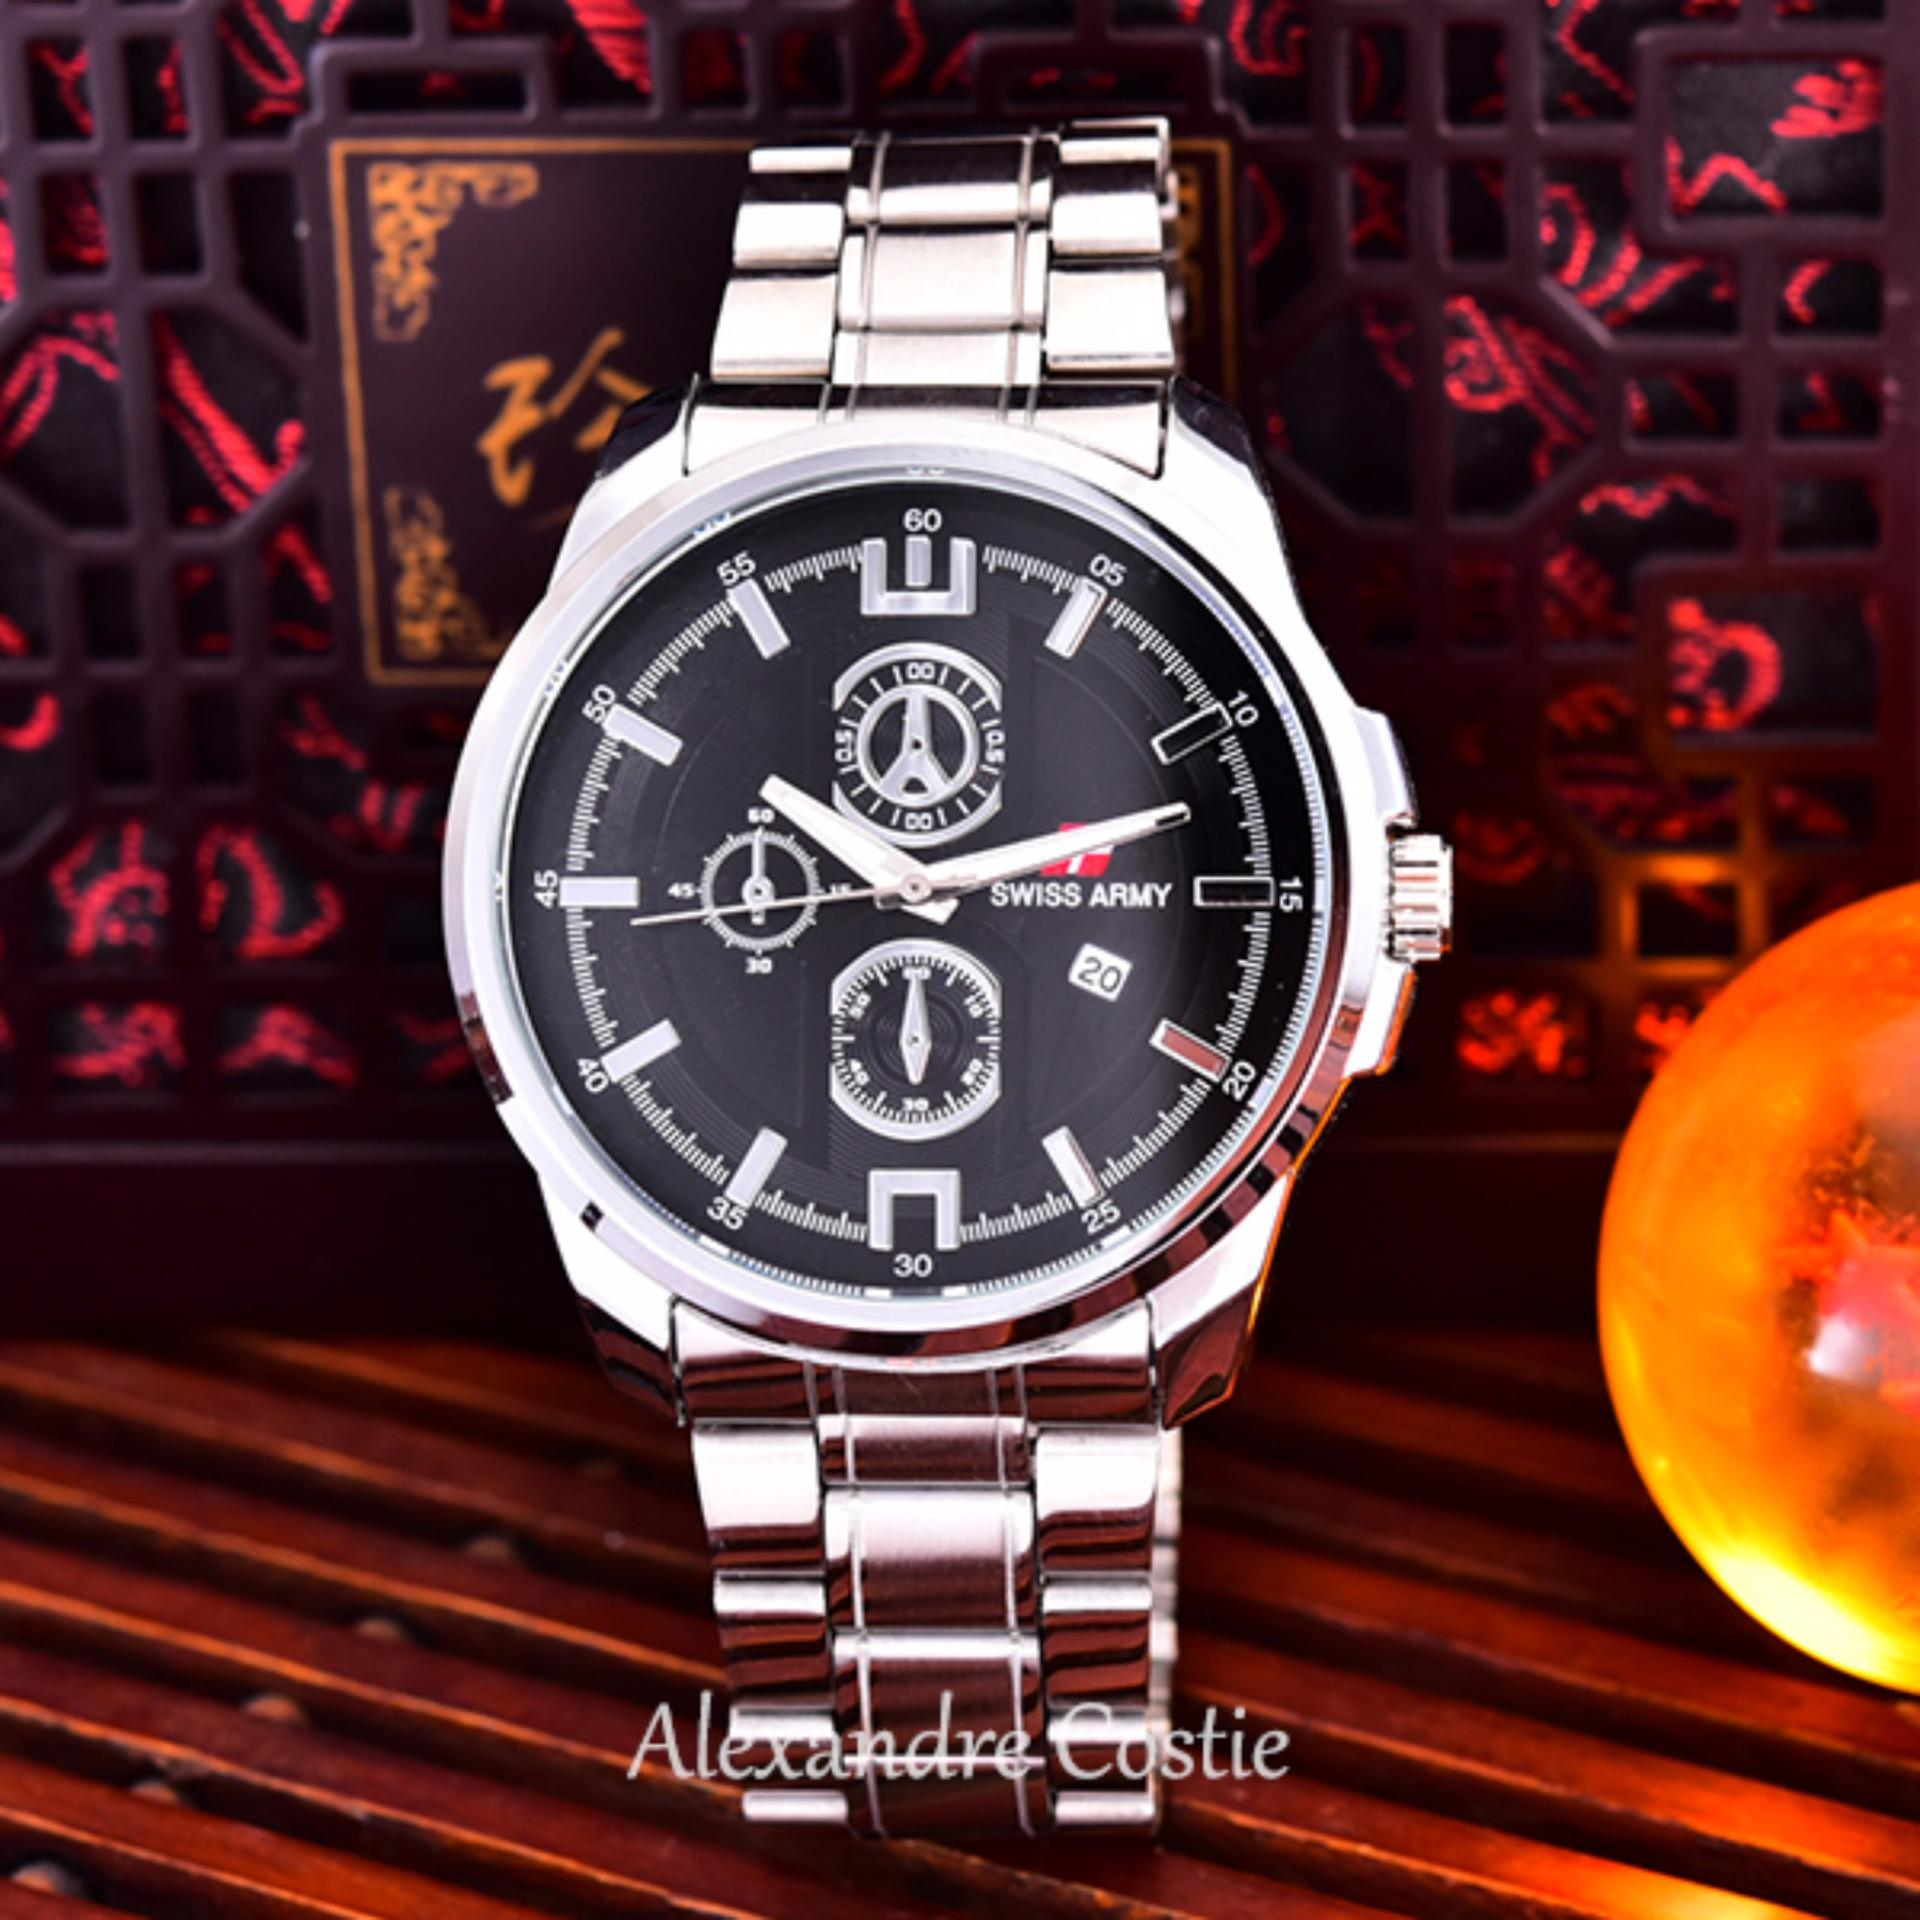 ... Swiss Army - Jam Tangan Pria - Body Silver- Black Dial - Stainless Stell Band ...